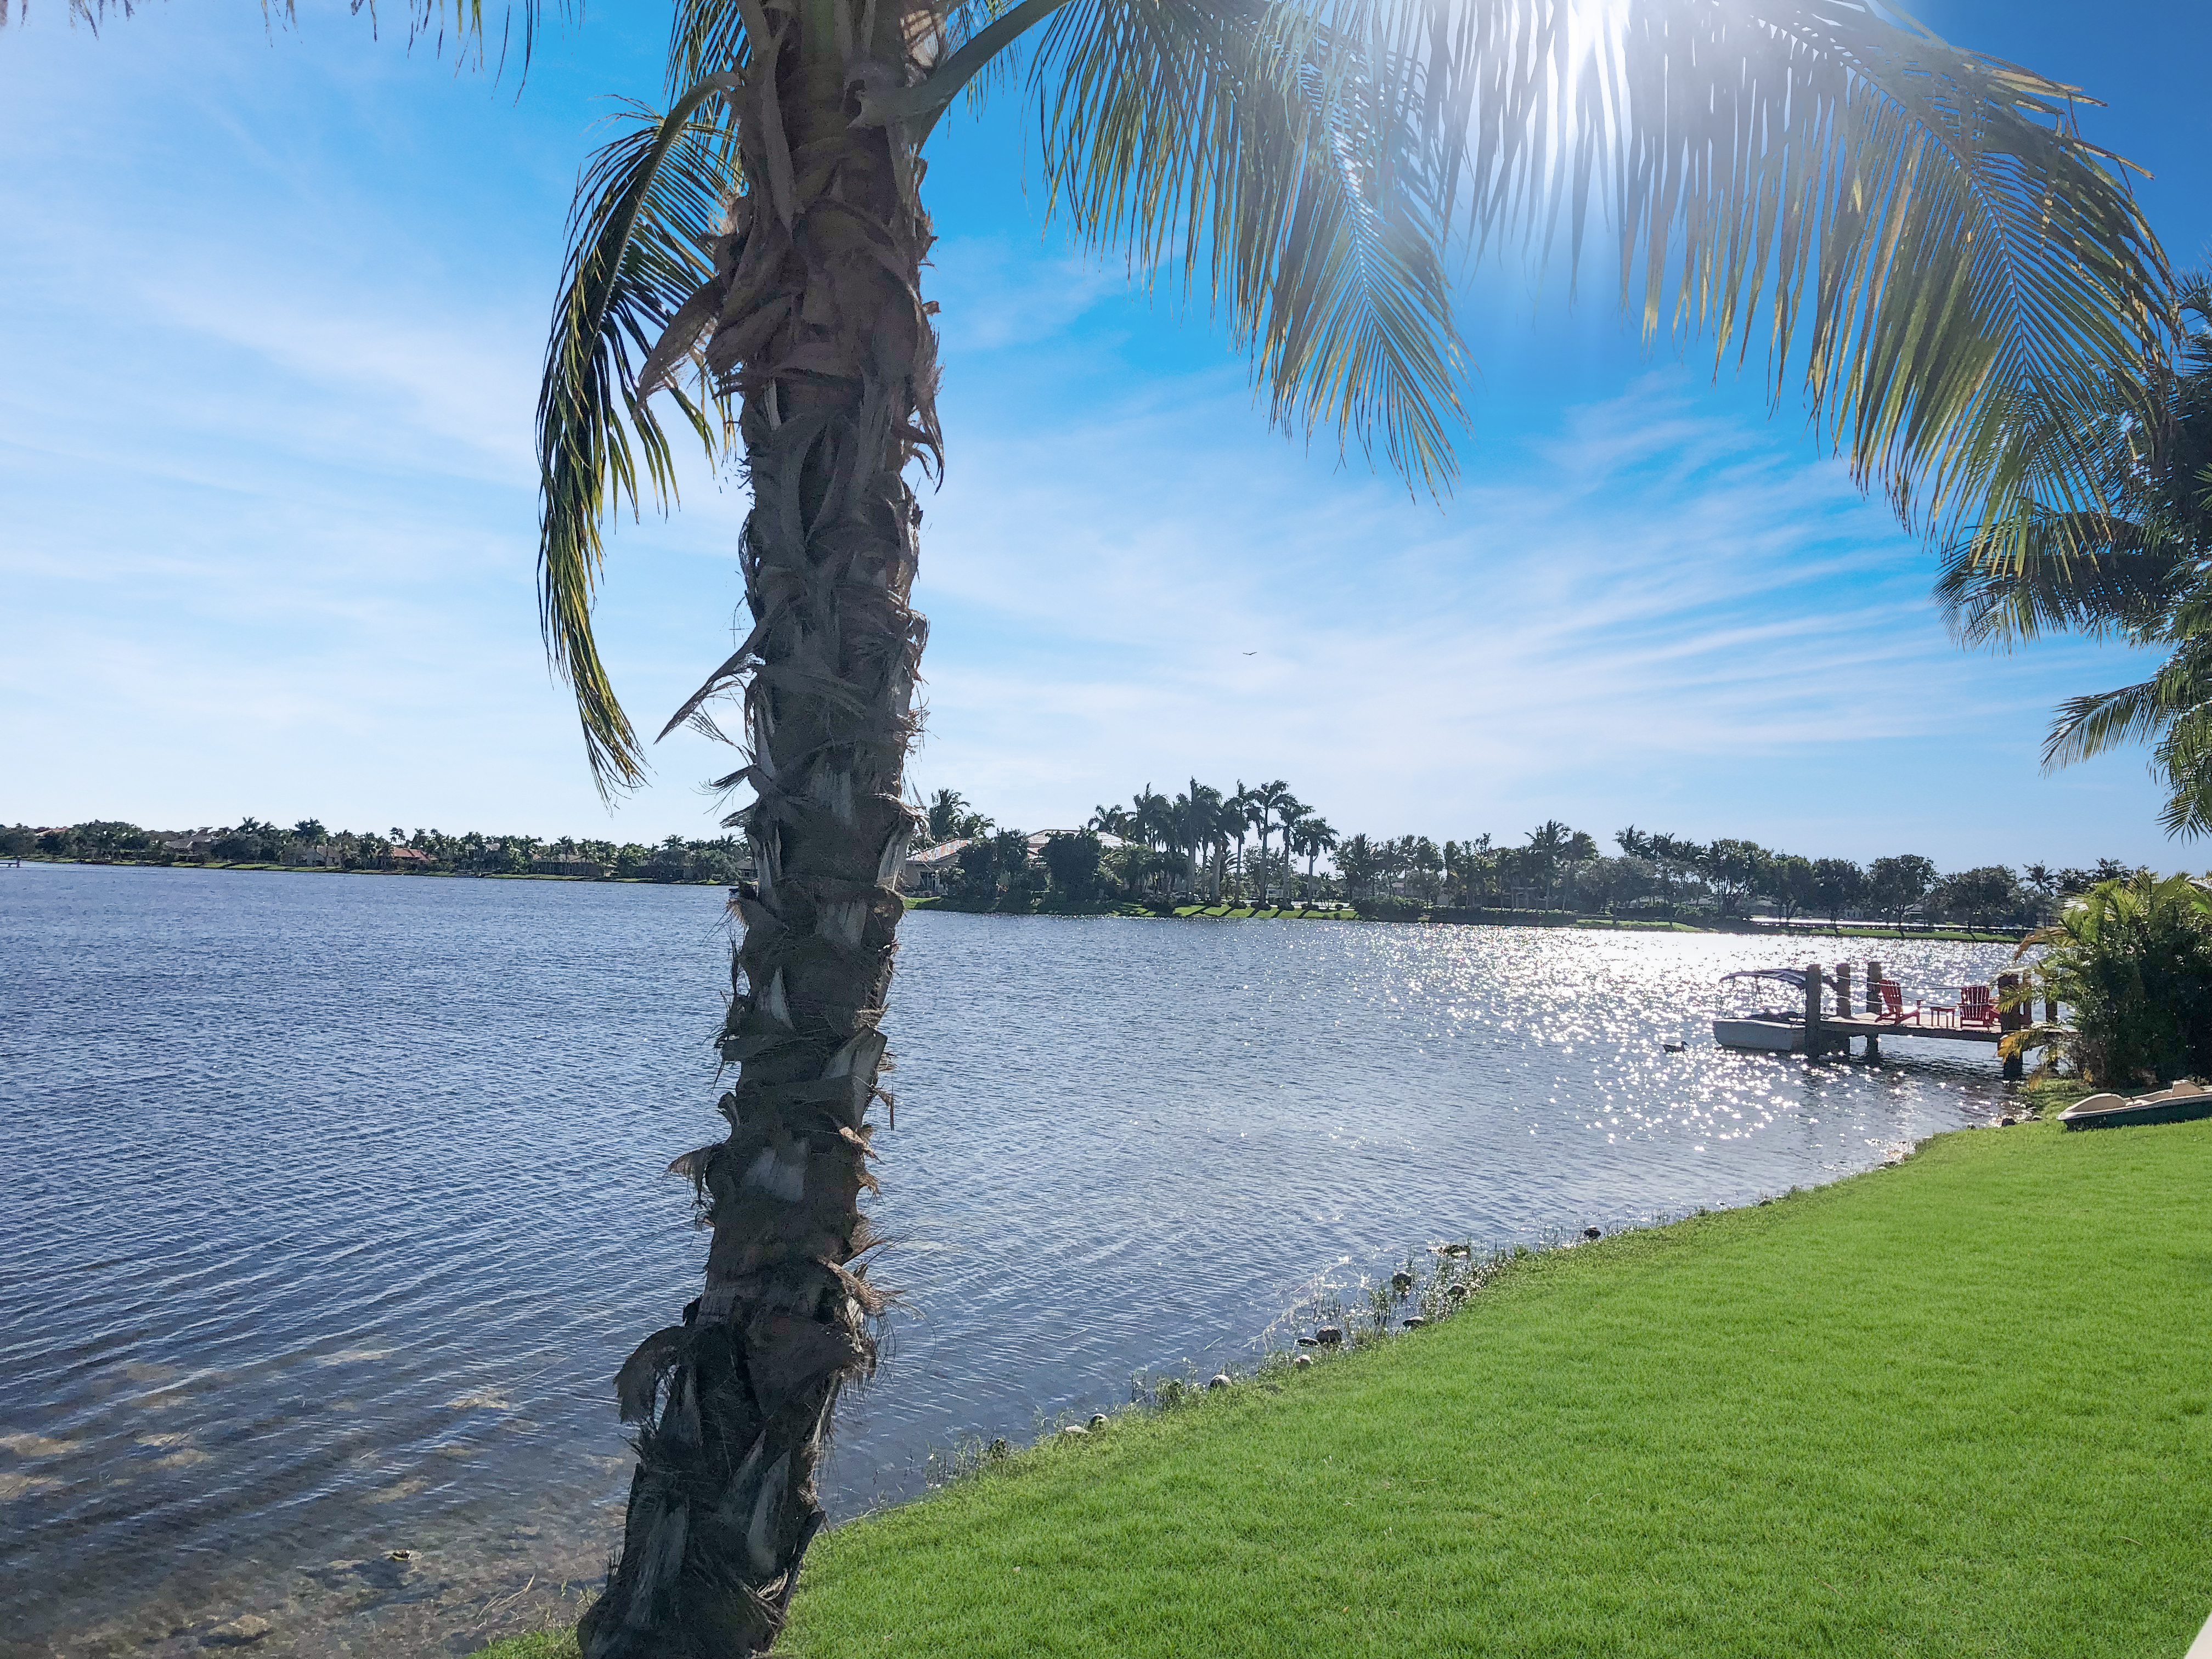 815 NW 123rd Dr., Coral Springs, FL 33071